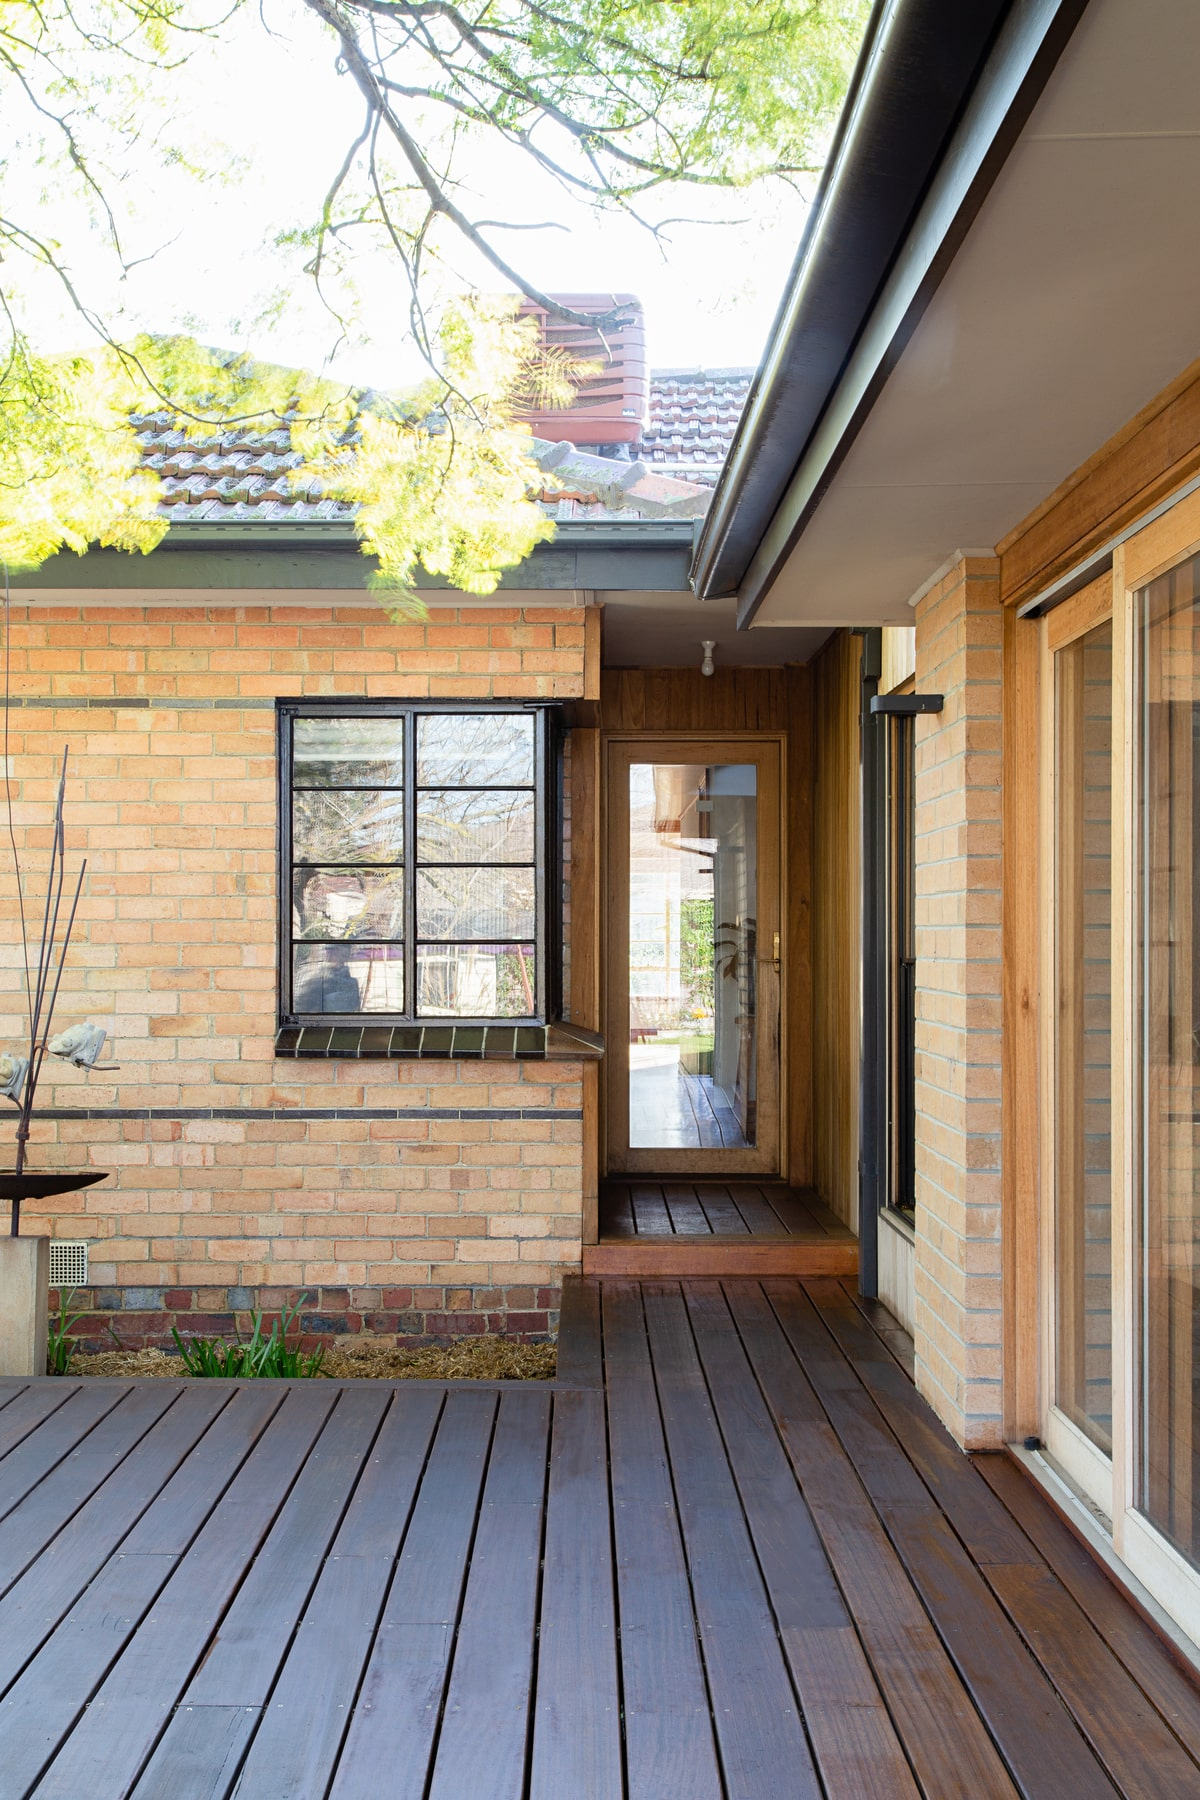 Bungalow Upcycle Project By Brave New Eco Local Residential Interior Design And Landscaping Pascoe Vale, South Vic Image 38